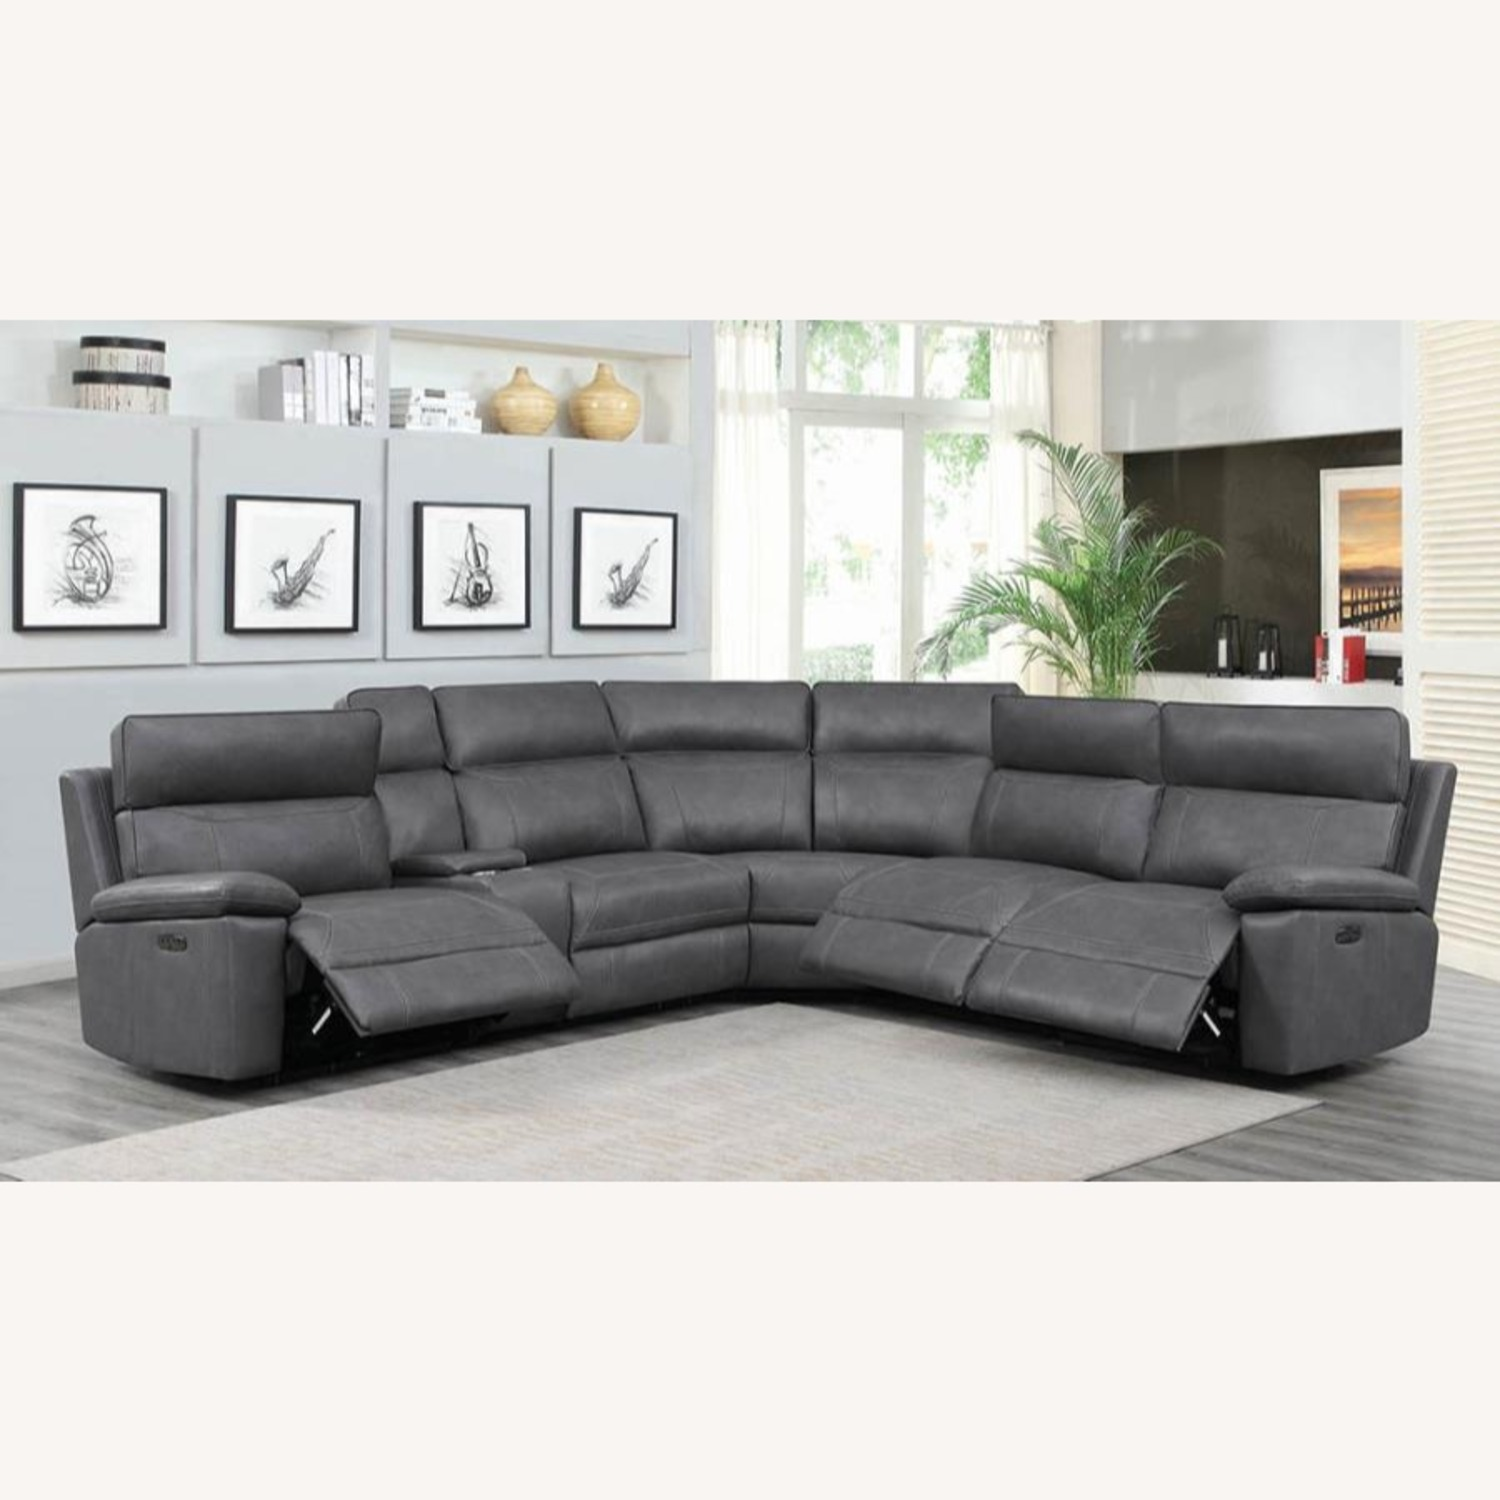 6-Piece Power2 Sectional In Grey Leatherette - image-8